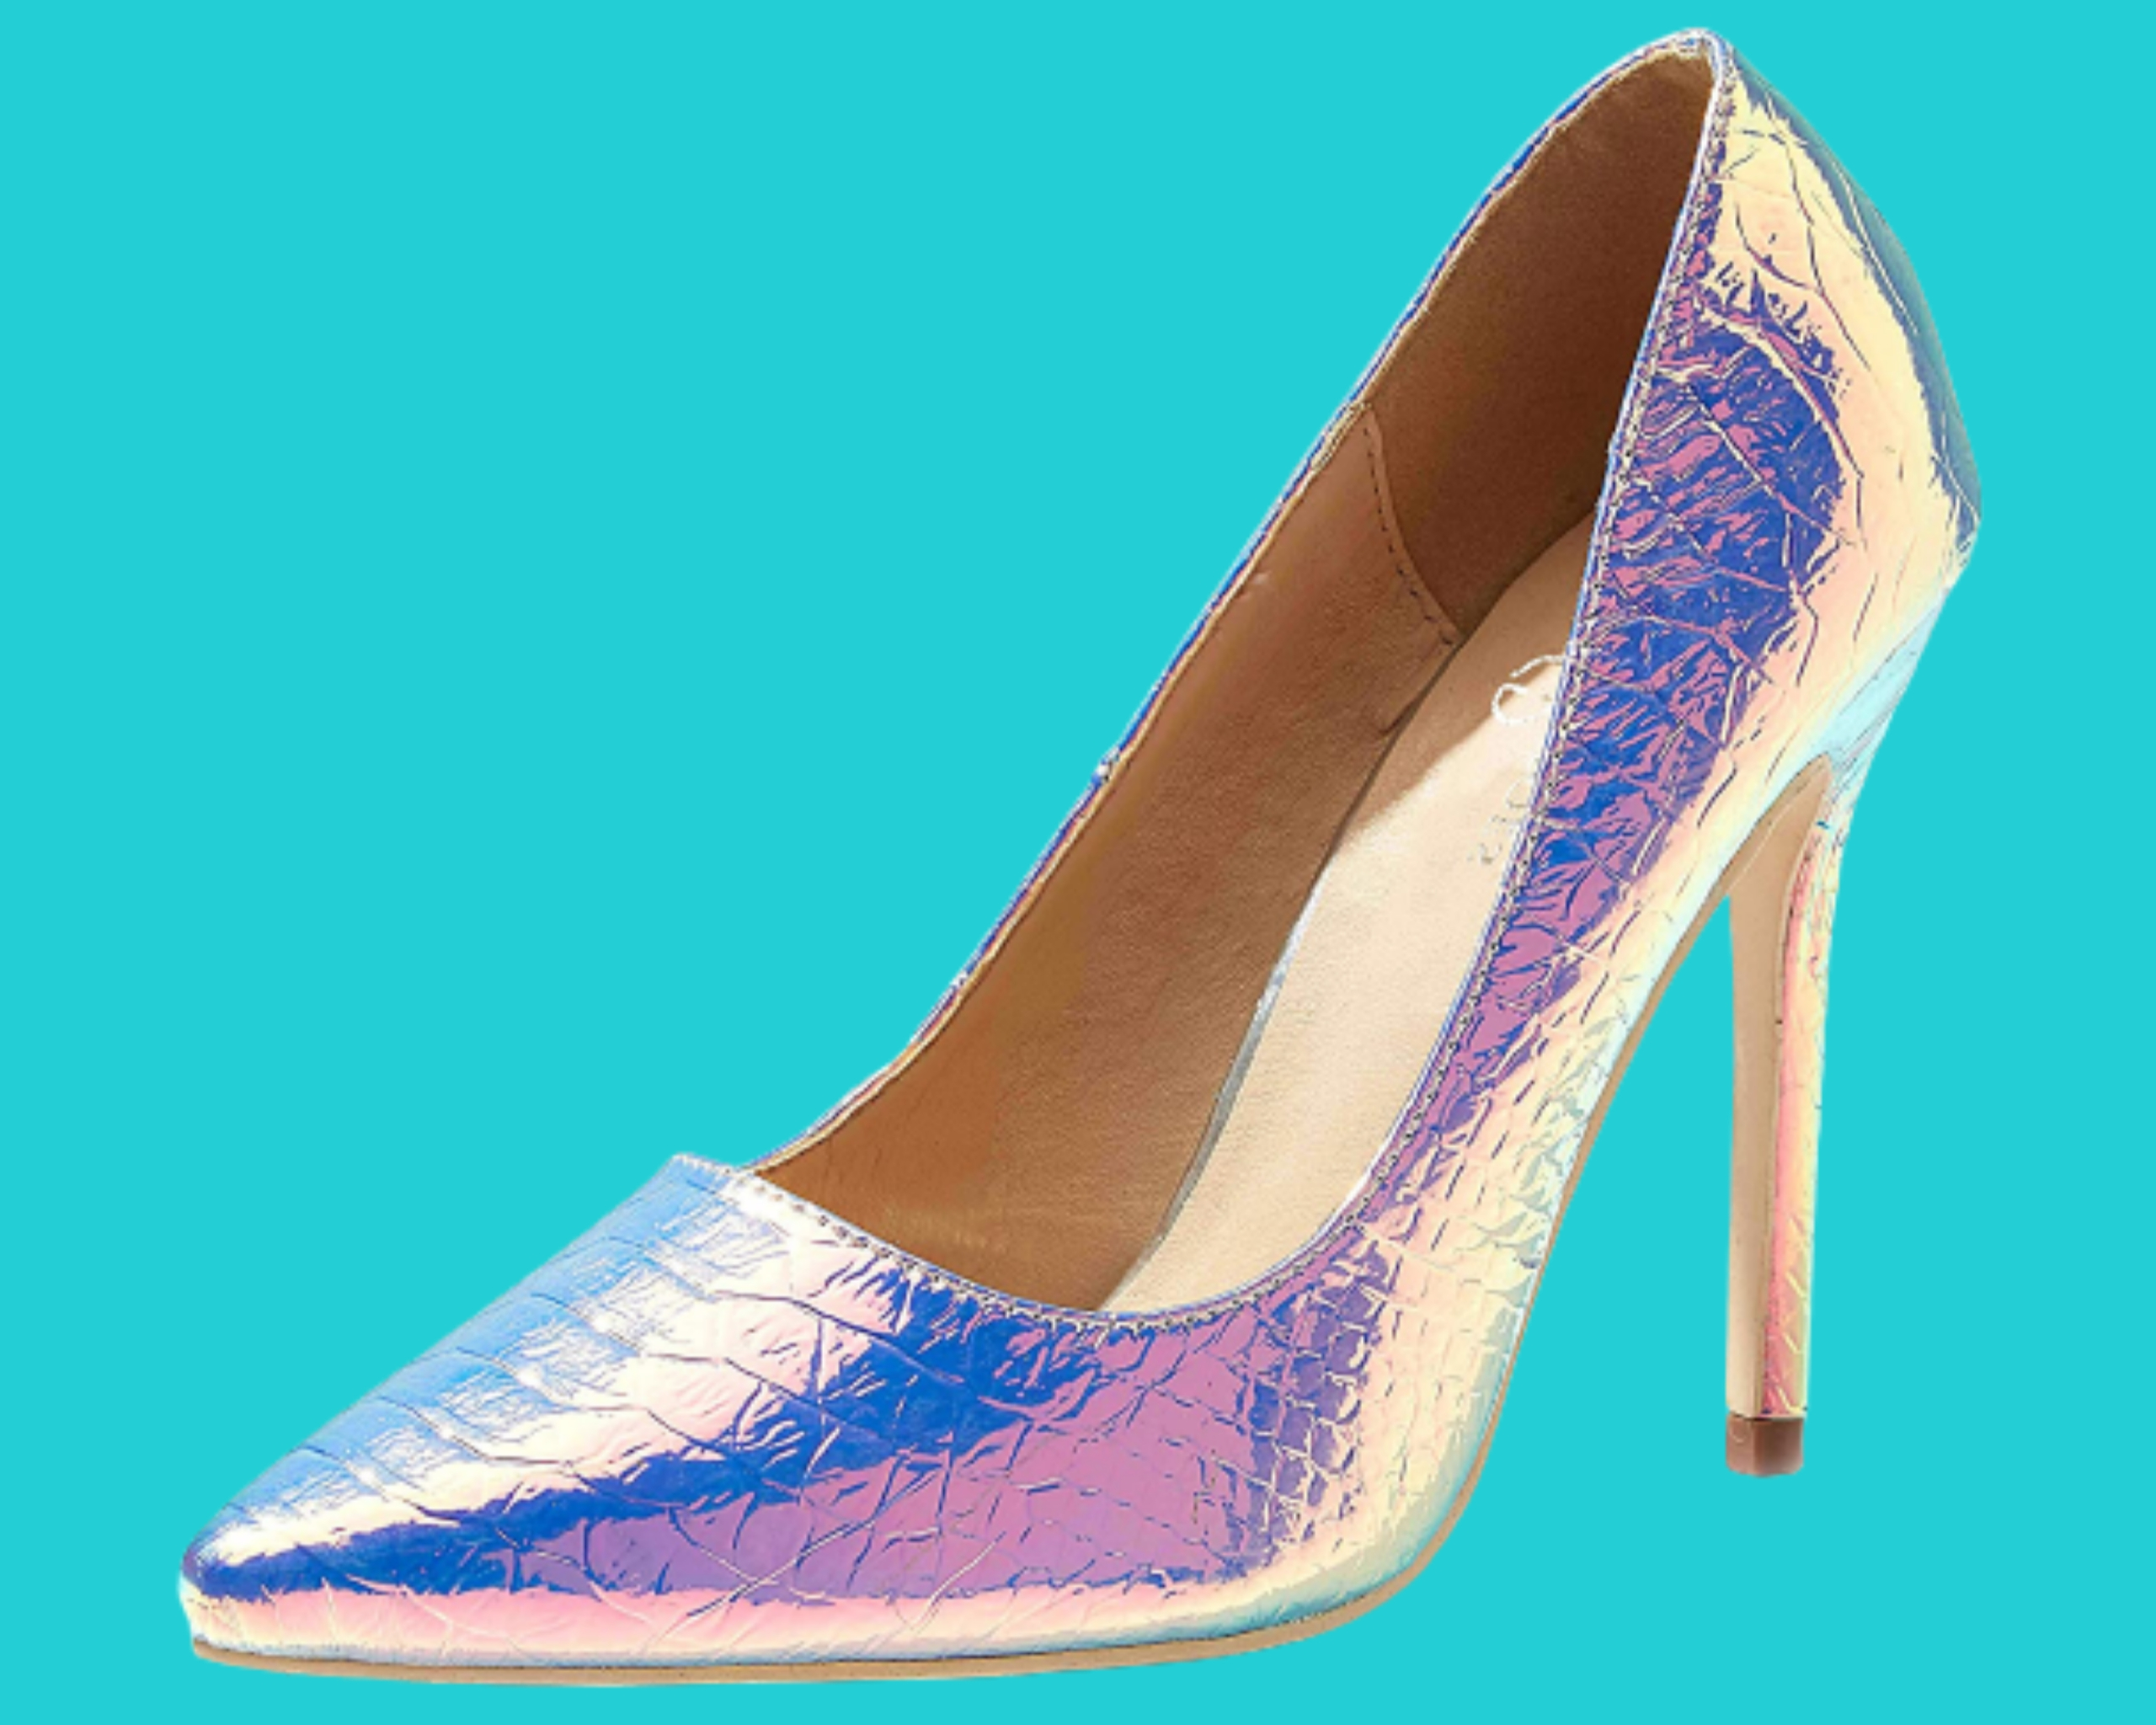 Best party shoes for women